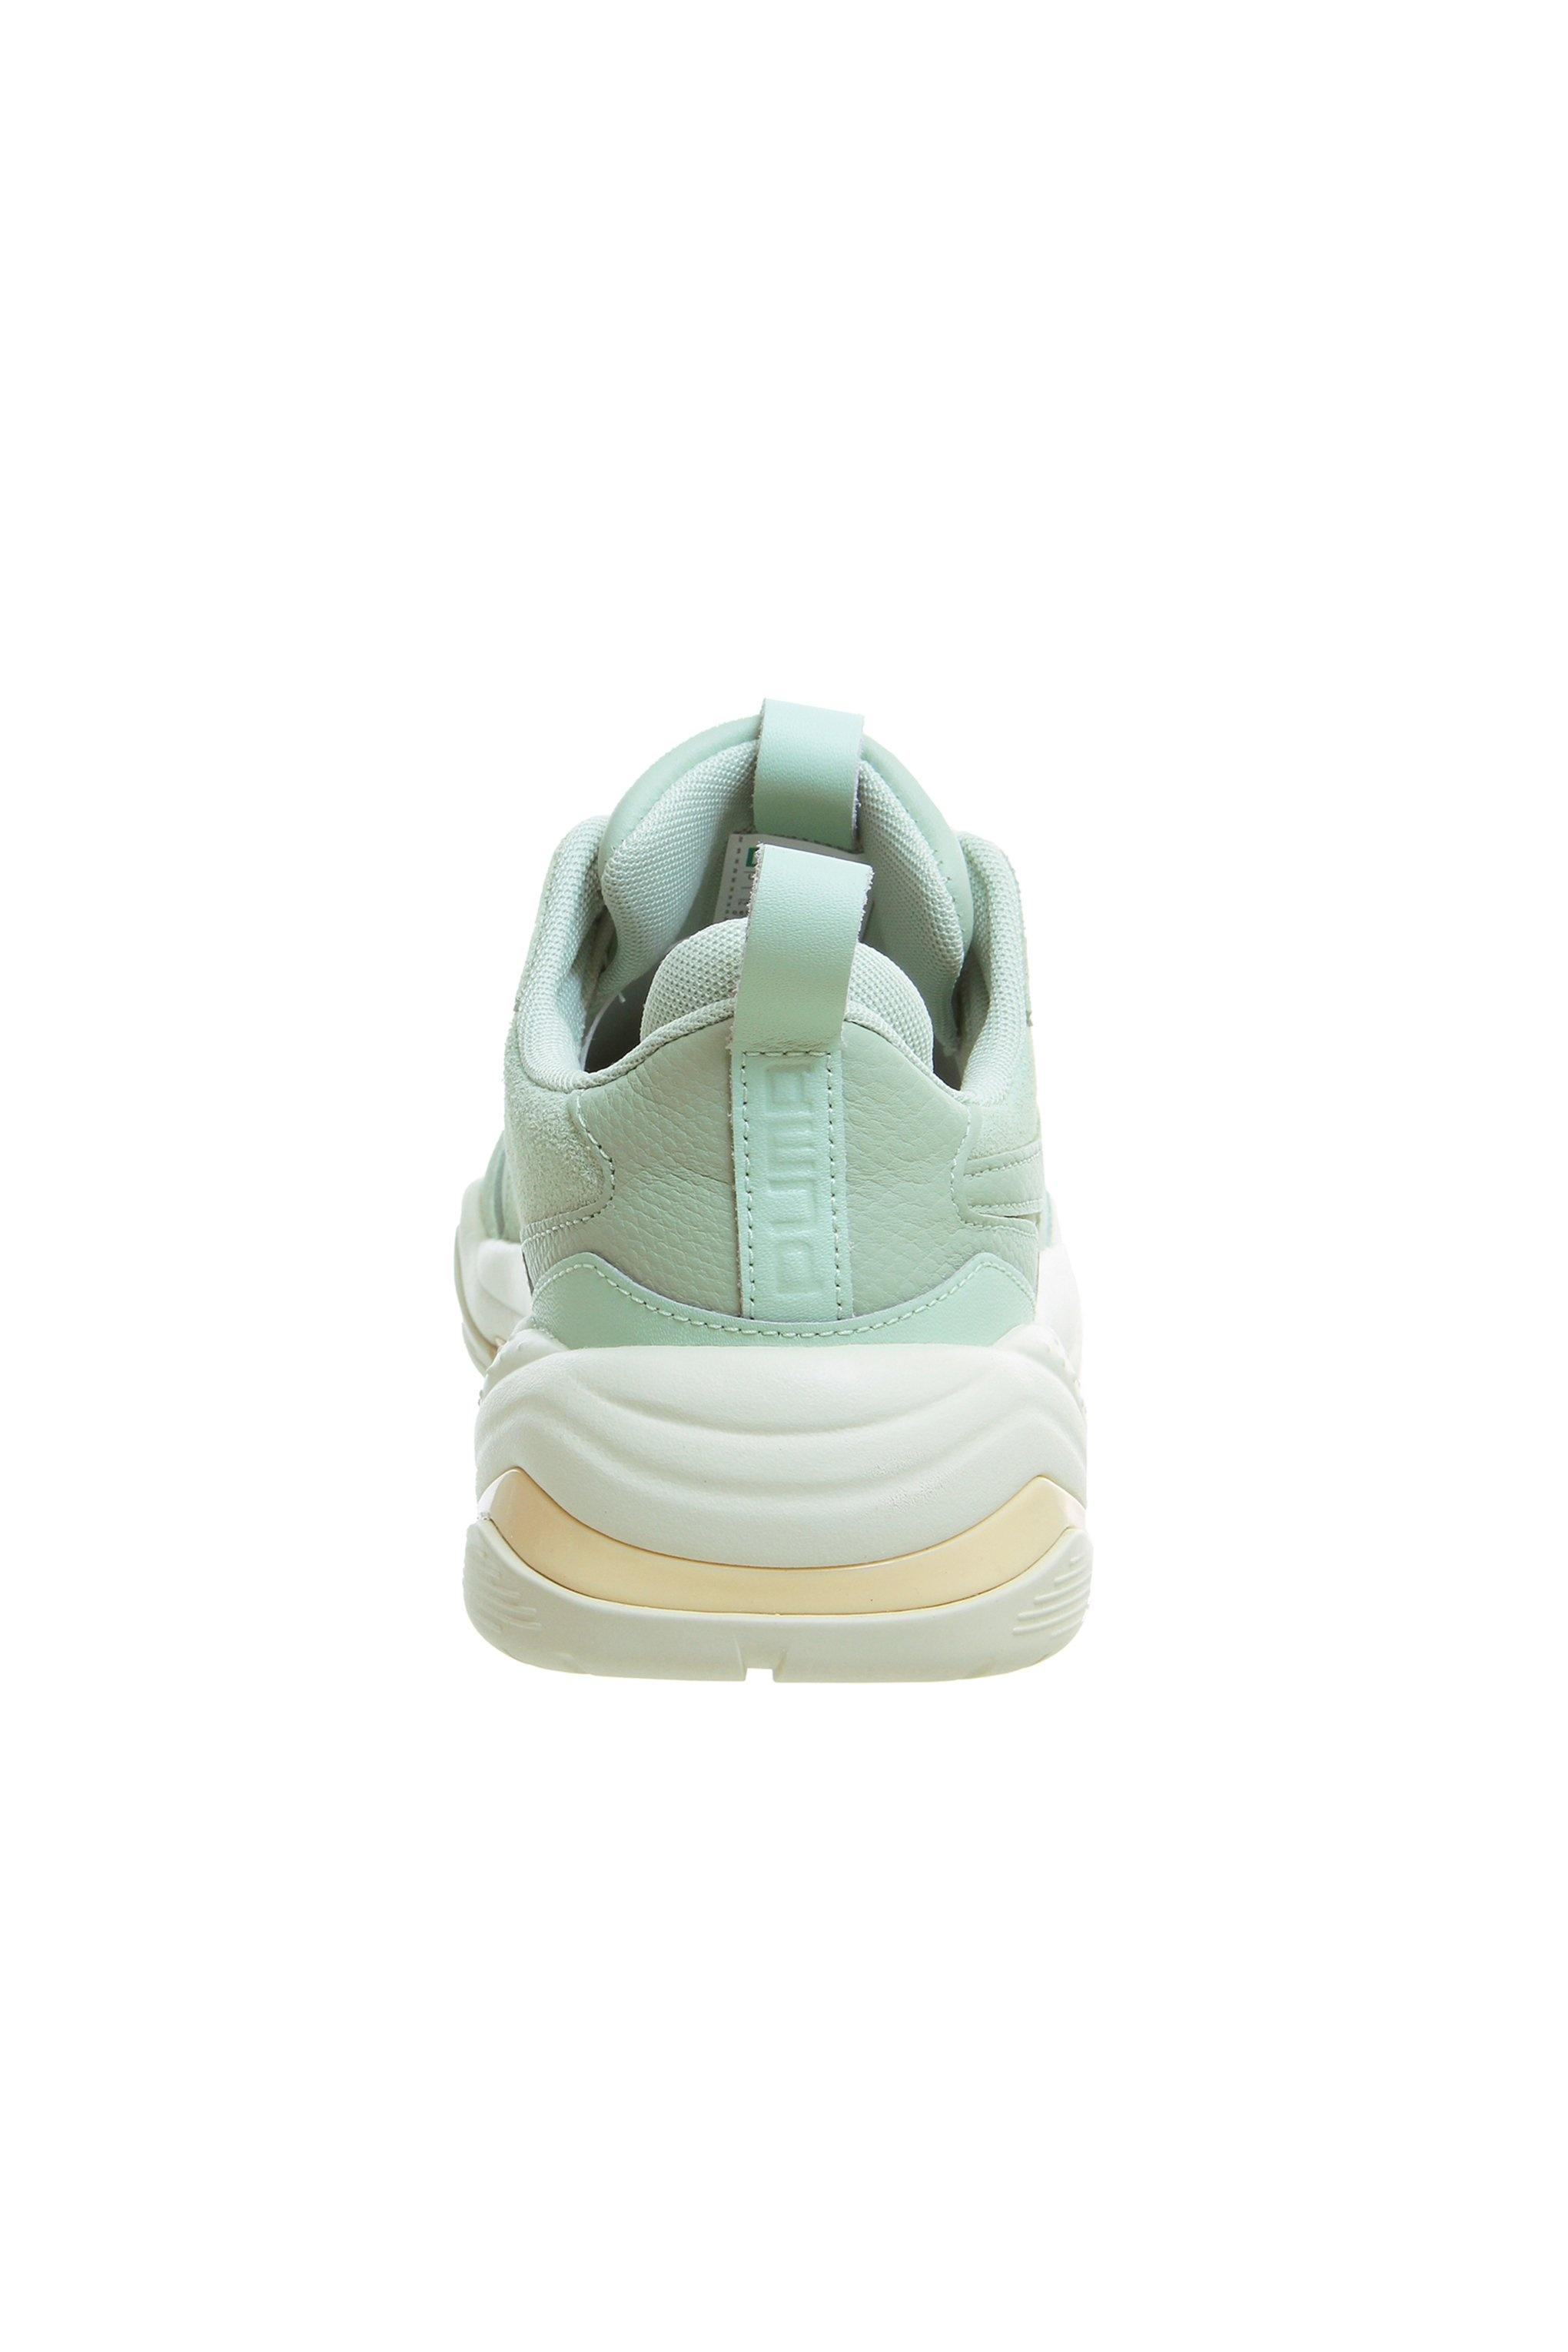 PUMA Leather Thunder Desert Trainers By